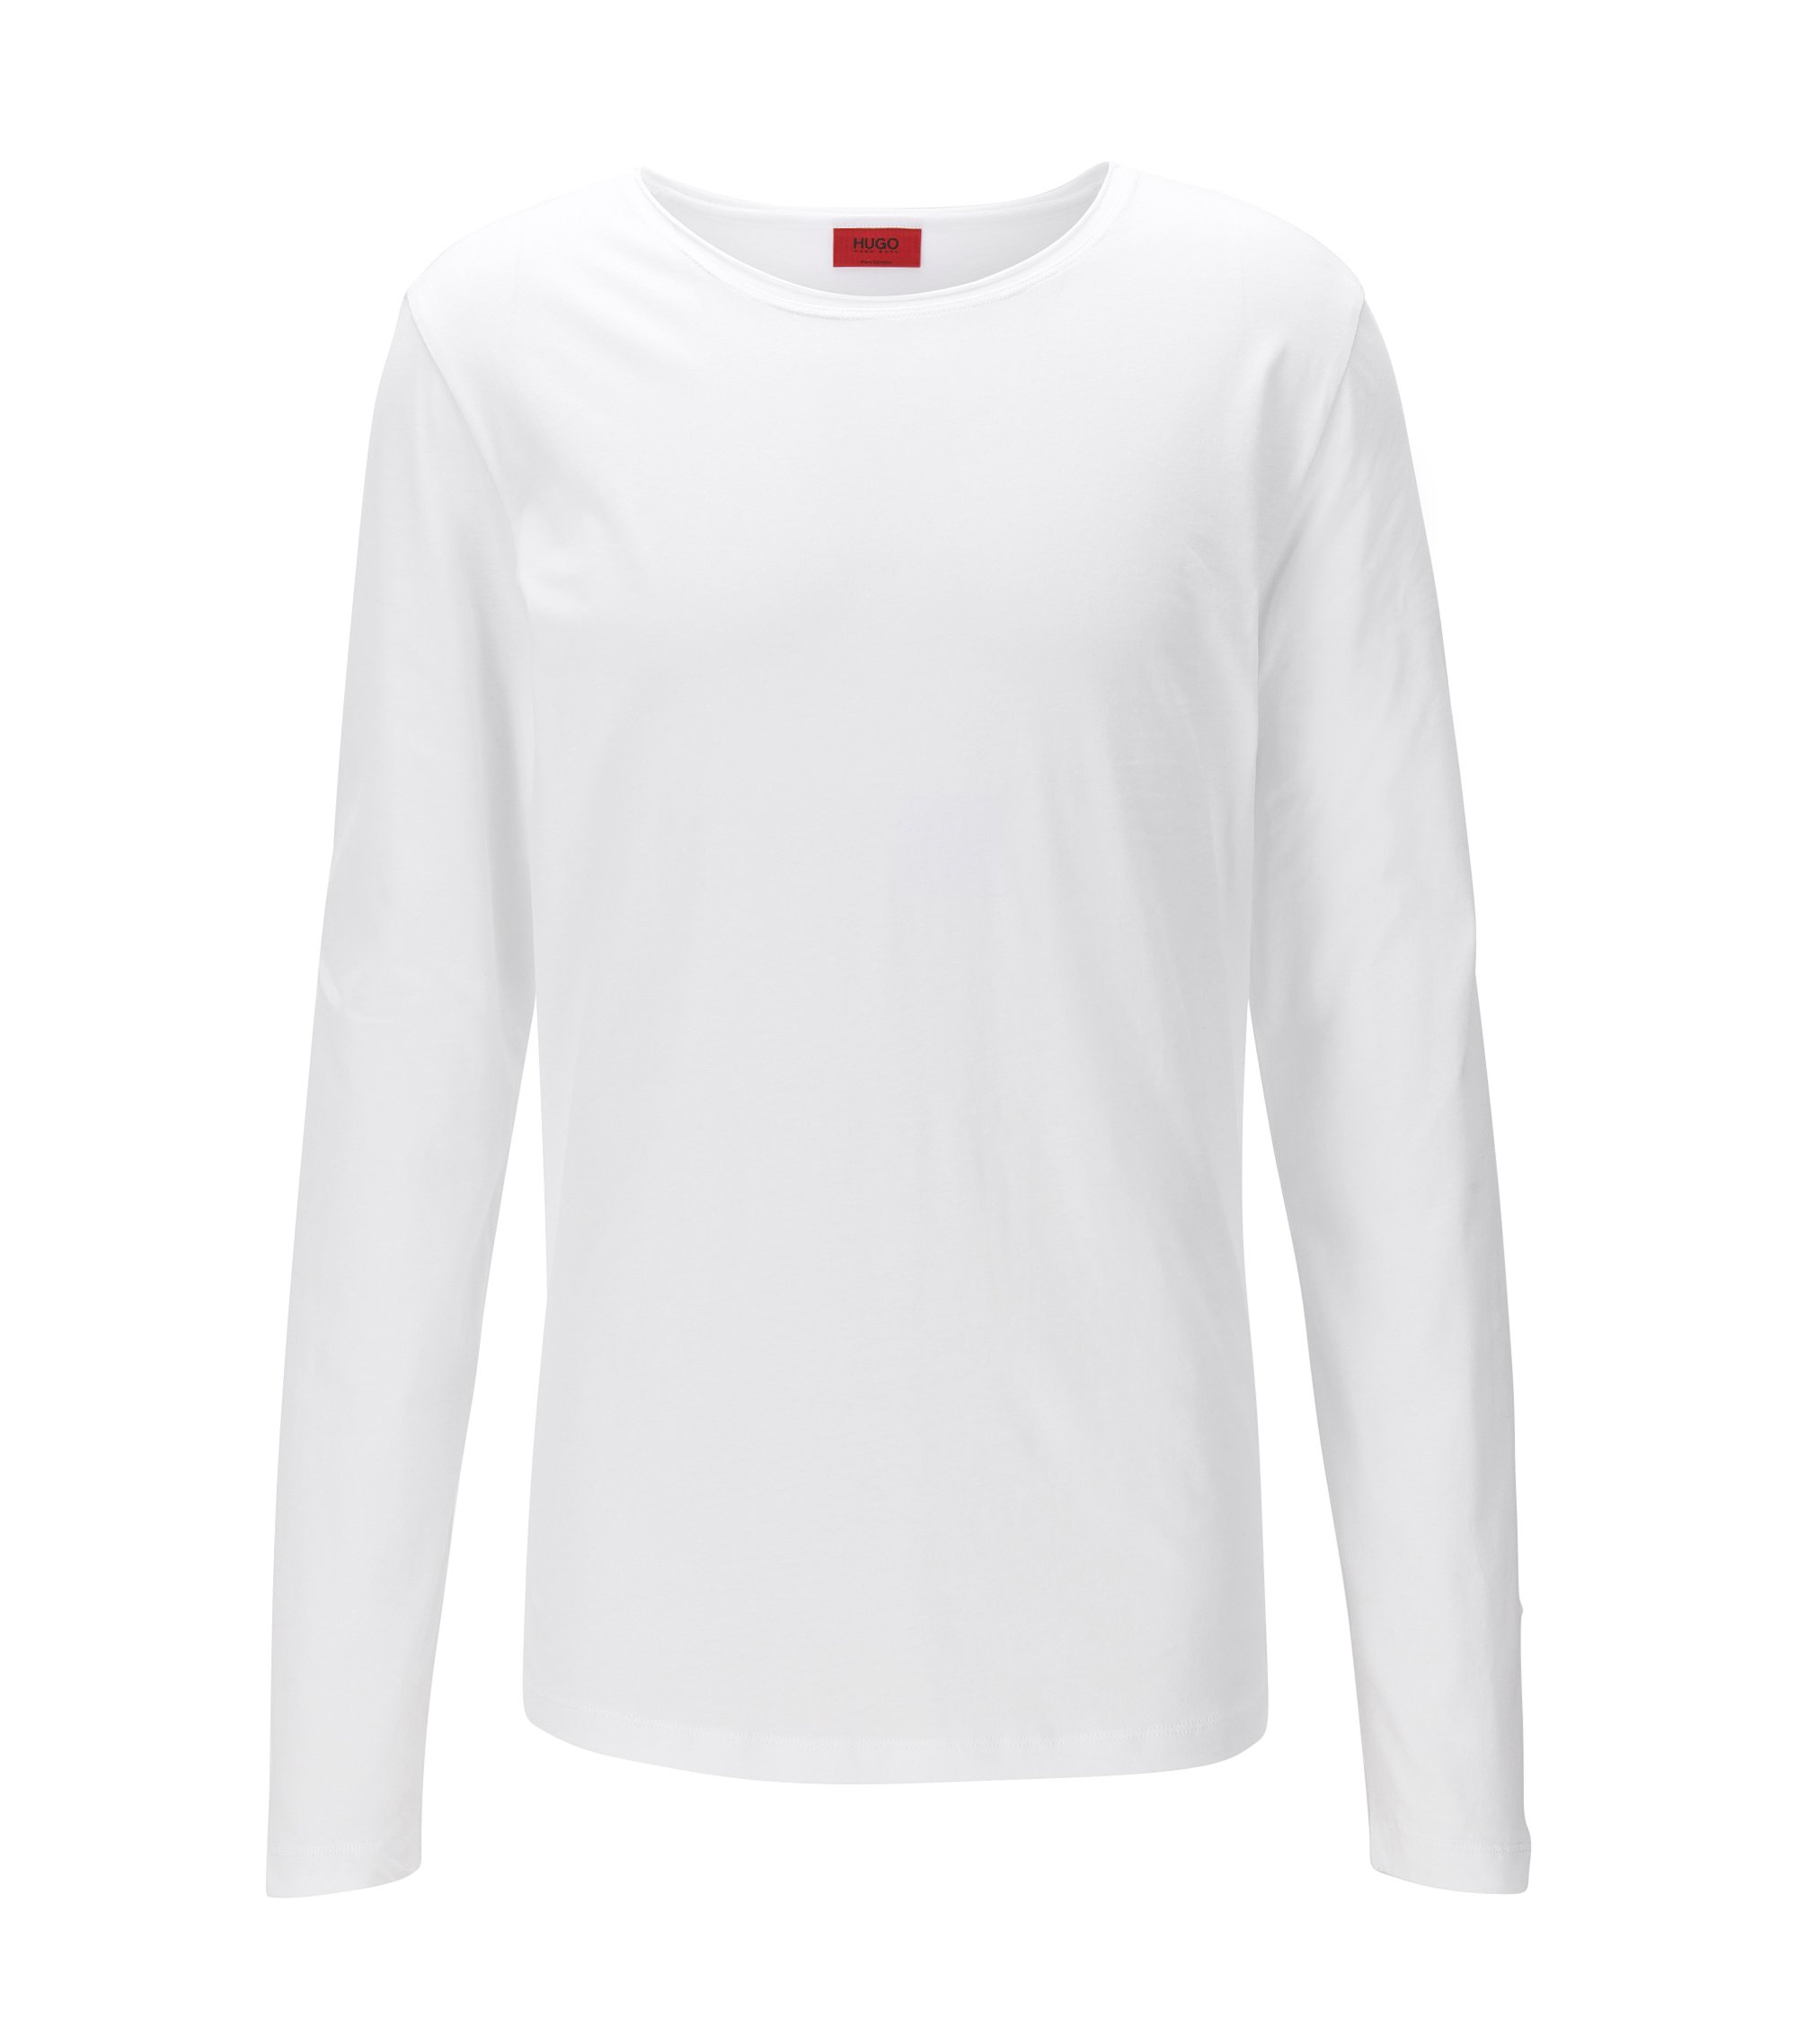 Camiseta relaxed fit de manga larga en algodón supima, Blanco